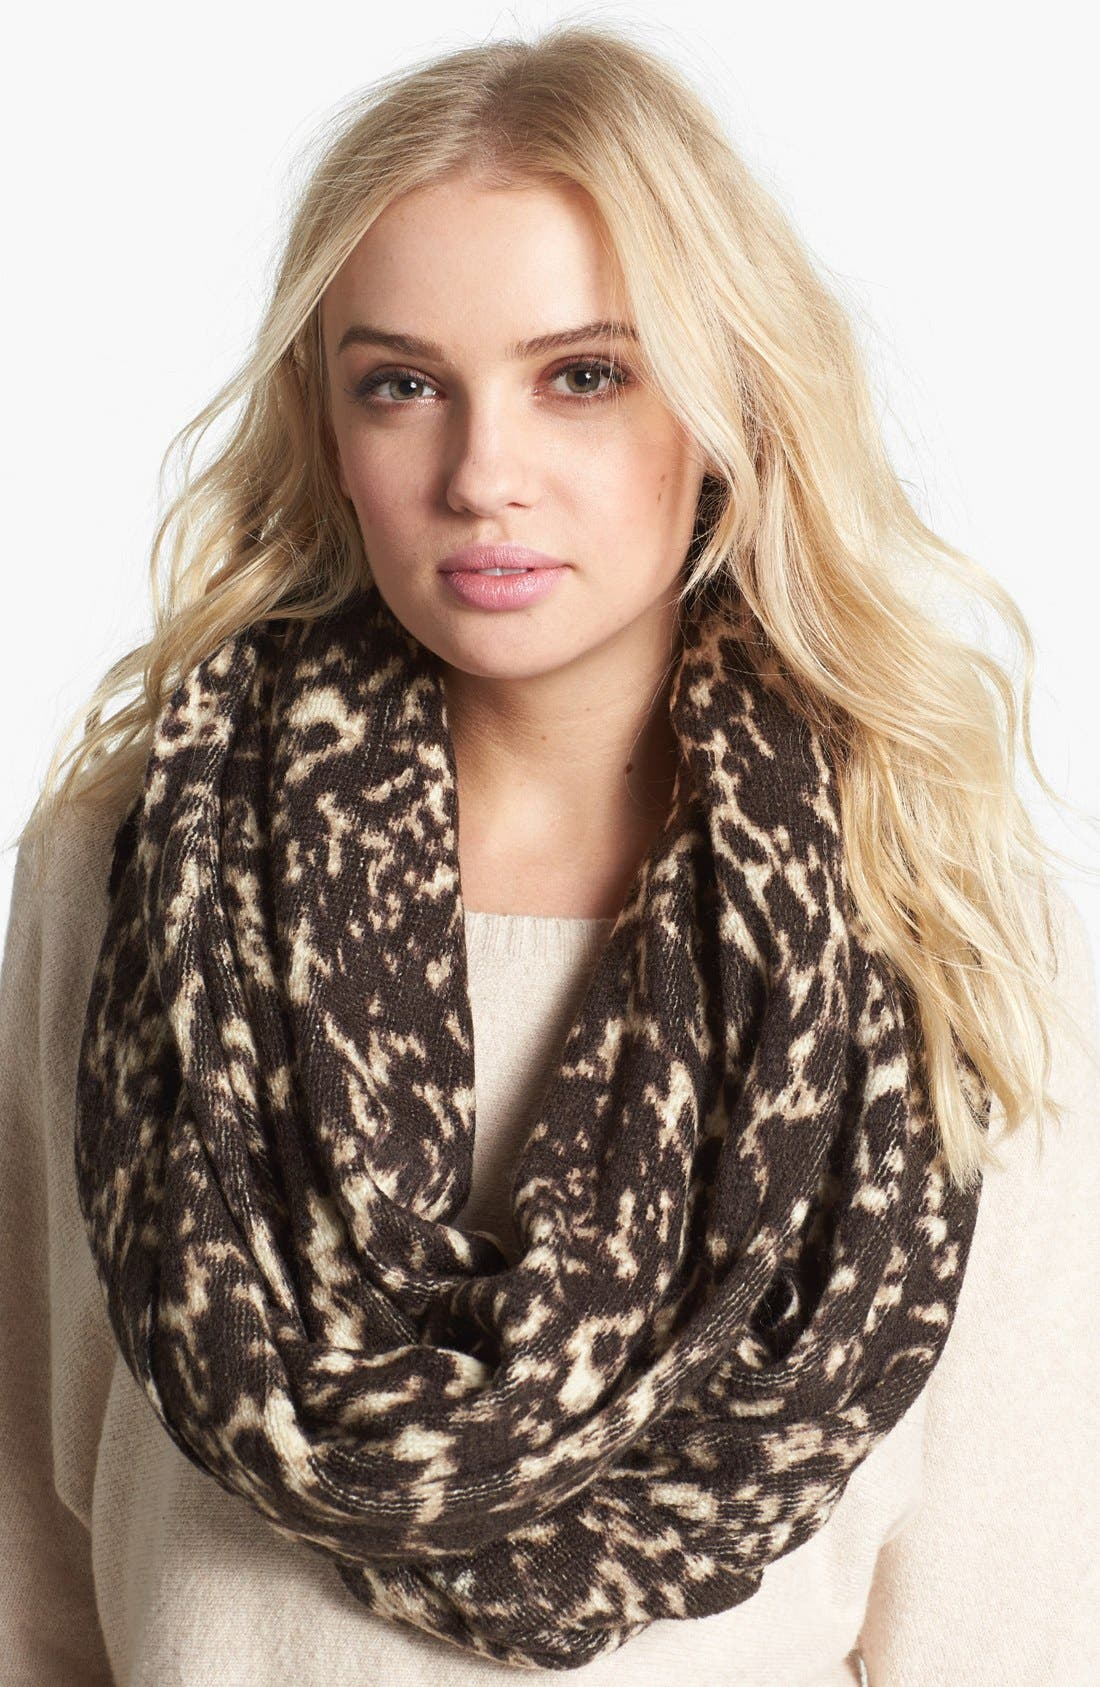 Alternate Image 1 Selected - MICHAEL Michael Kors 'Rochelle' Infinity Scarf